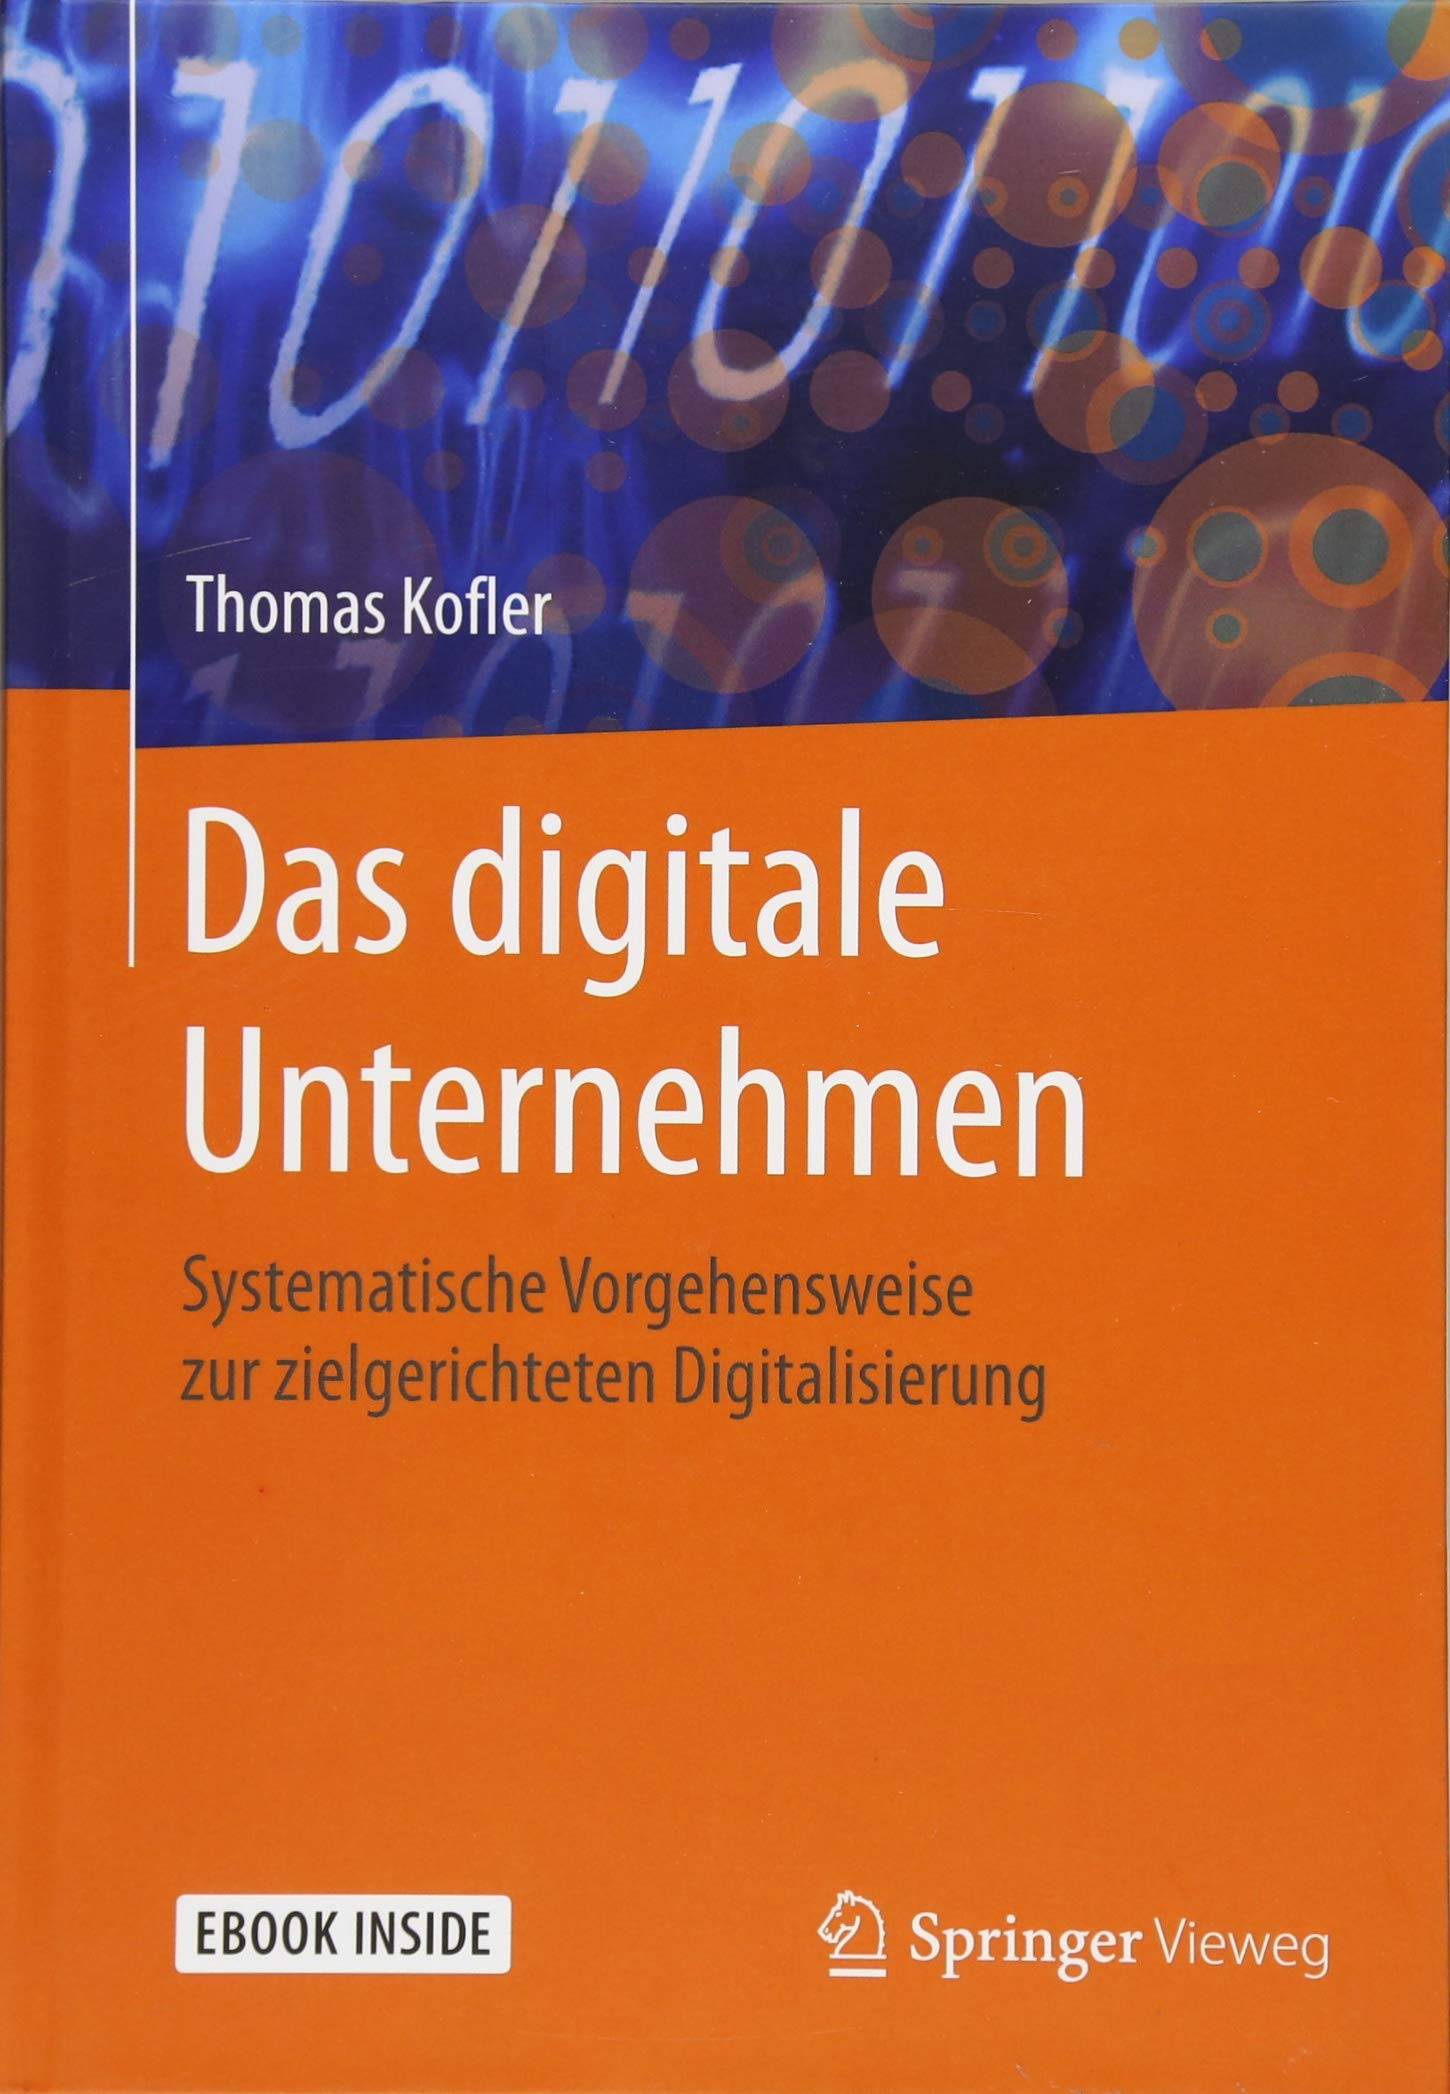 Das digitale Unternehmen: Systematische Vorgehensweise zur zielgerichteten Digitalisierung Taschenbuch – 12. Juli 2018 Thomas Kofler Springer Vieweg 3662576163 COMPUTERS / Online Services